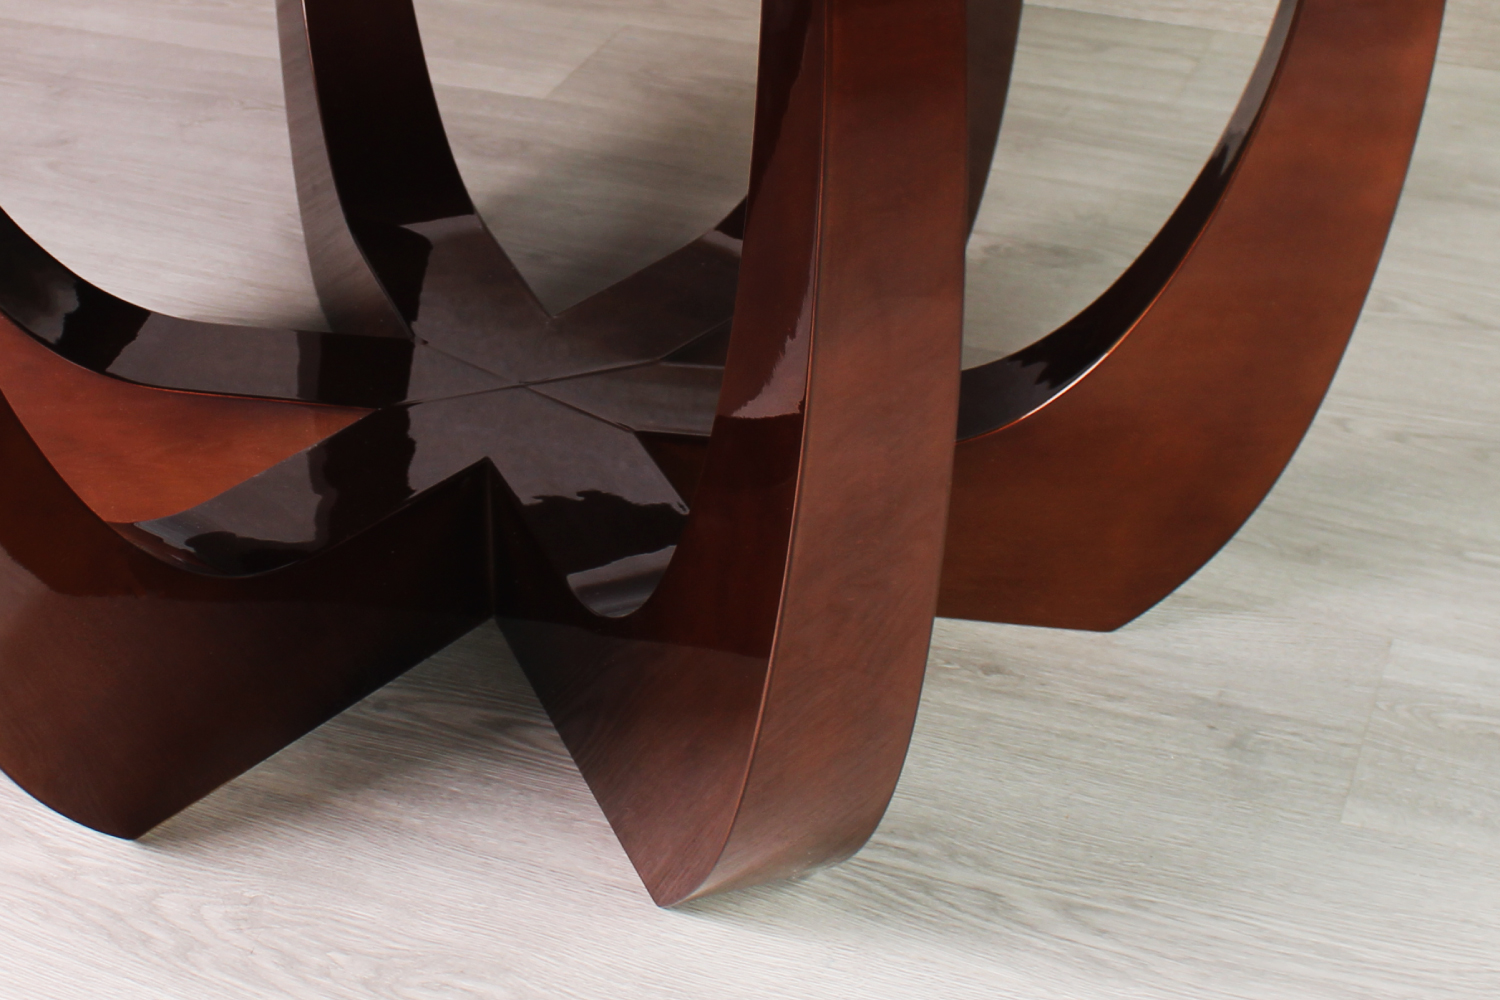 Canopy contemporary dining table in wood veneered with radial matched ironwood leaves